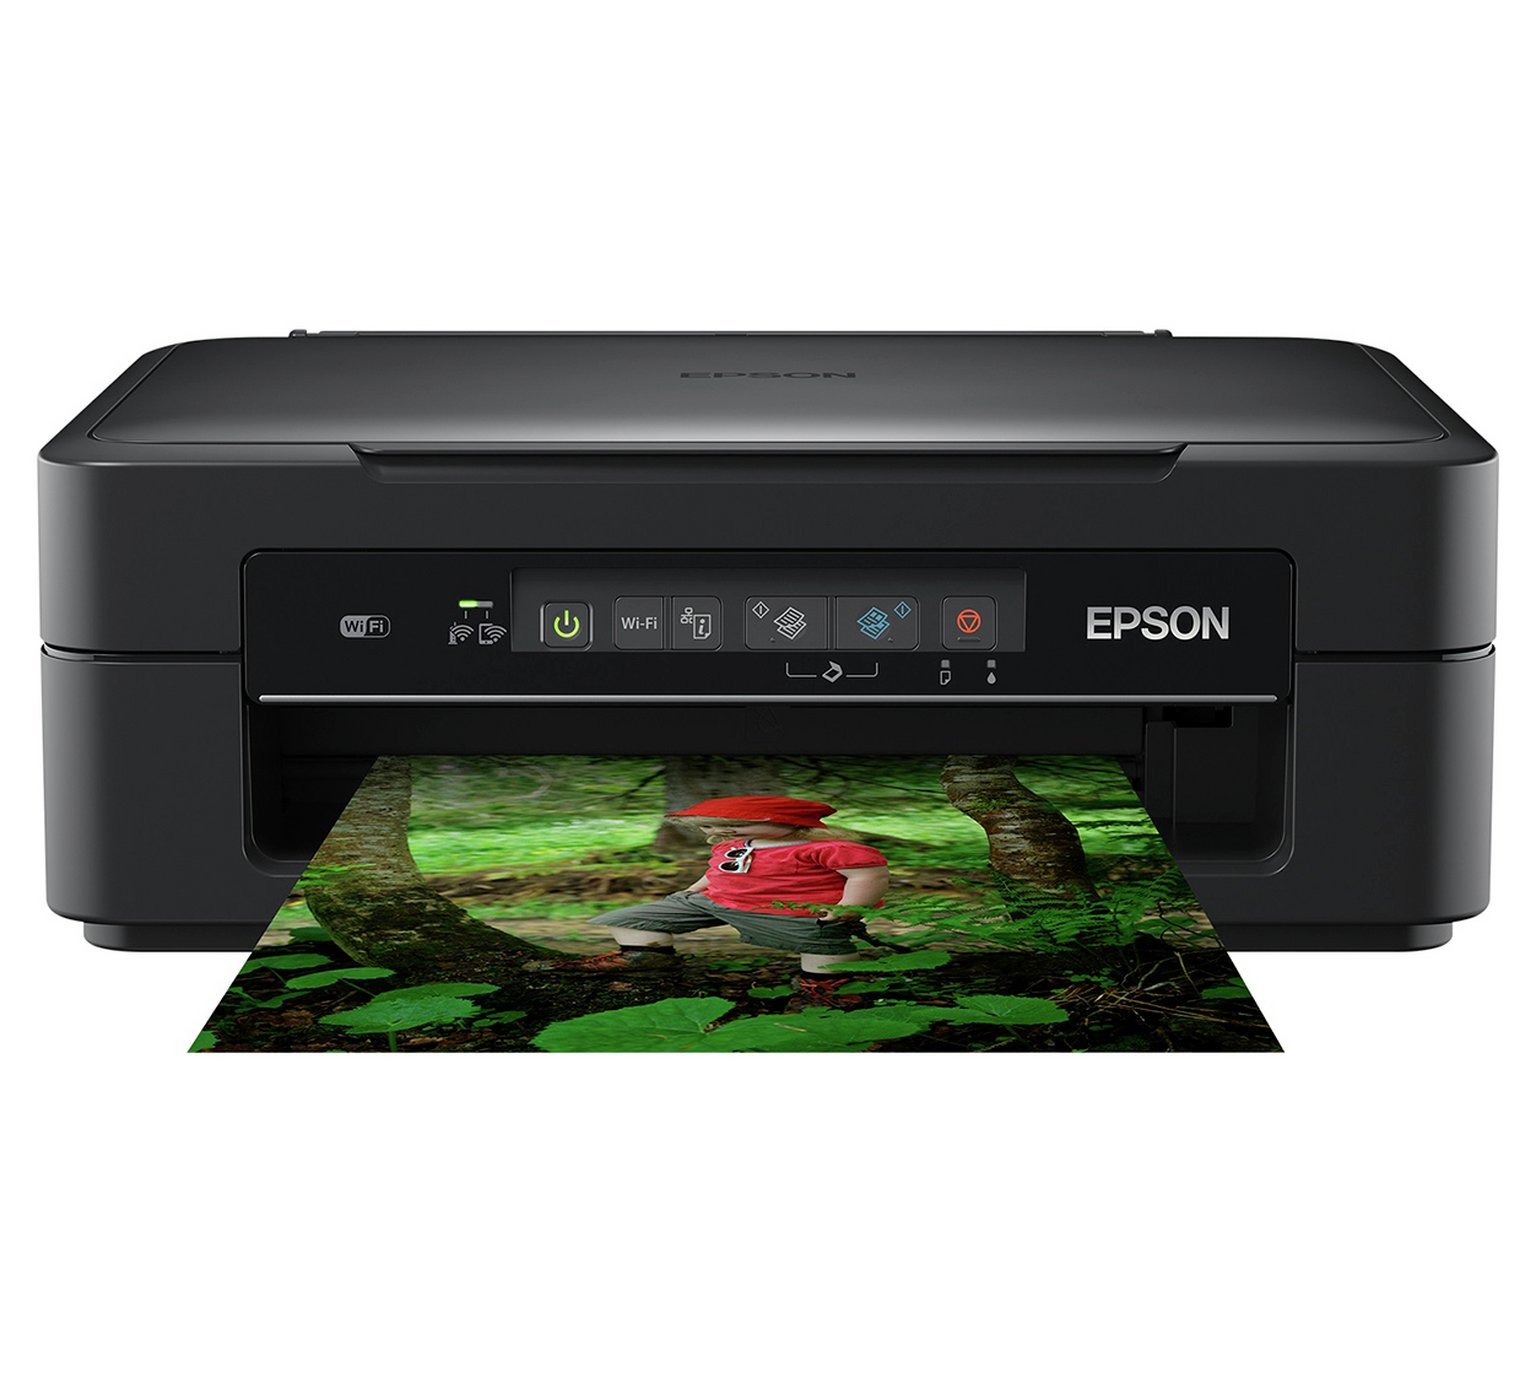 Epson Expression Home XP-255 All-in-One Wireless Printer